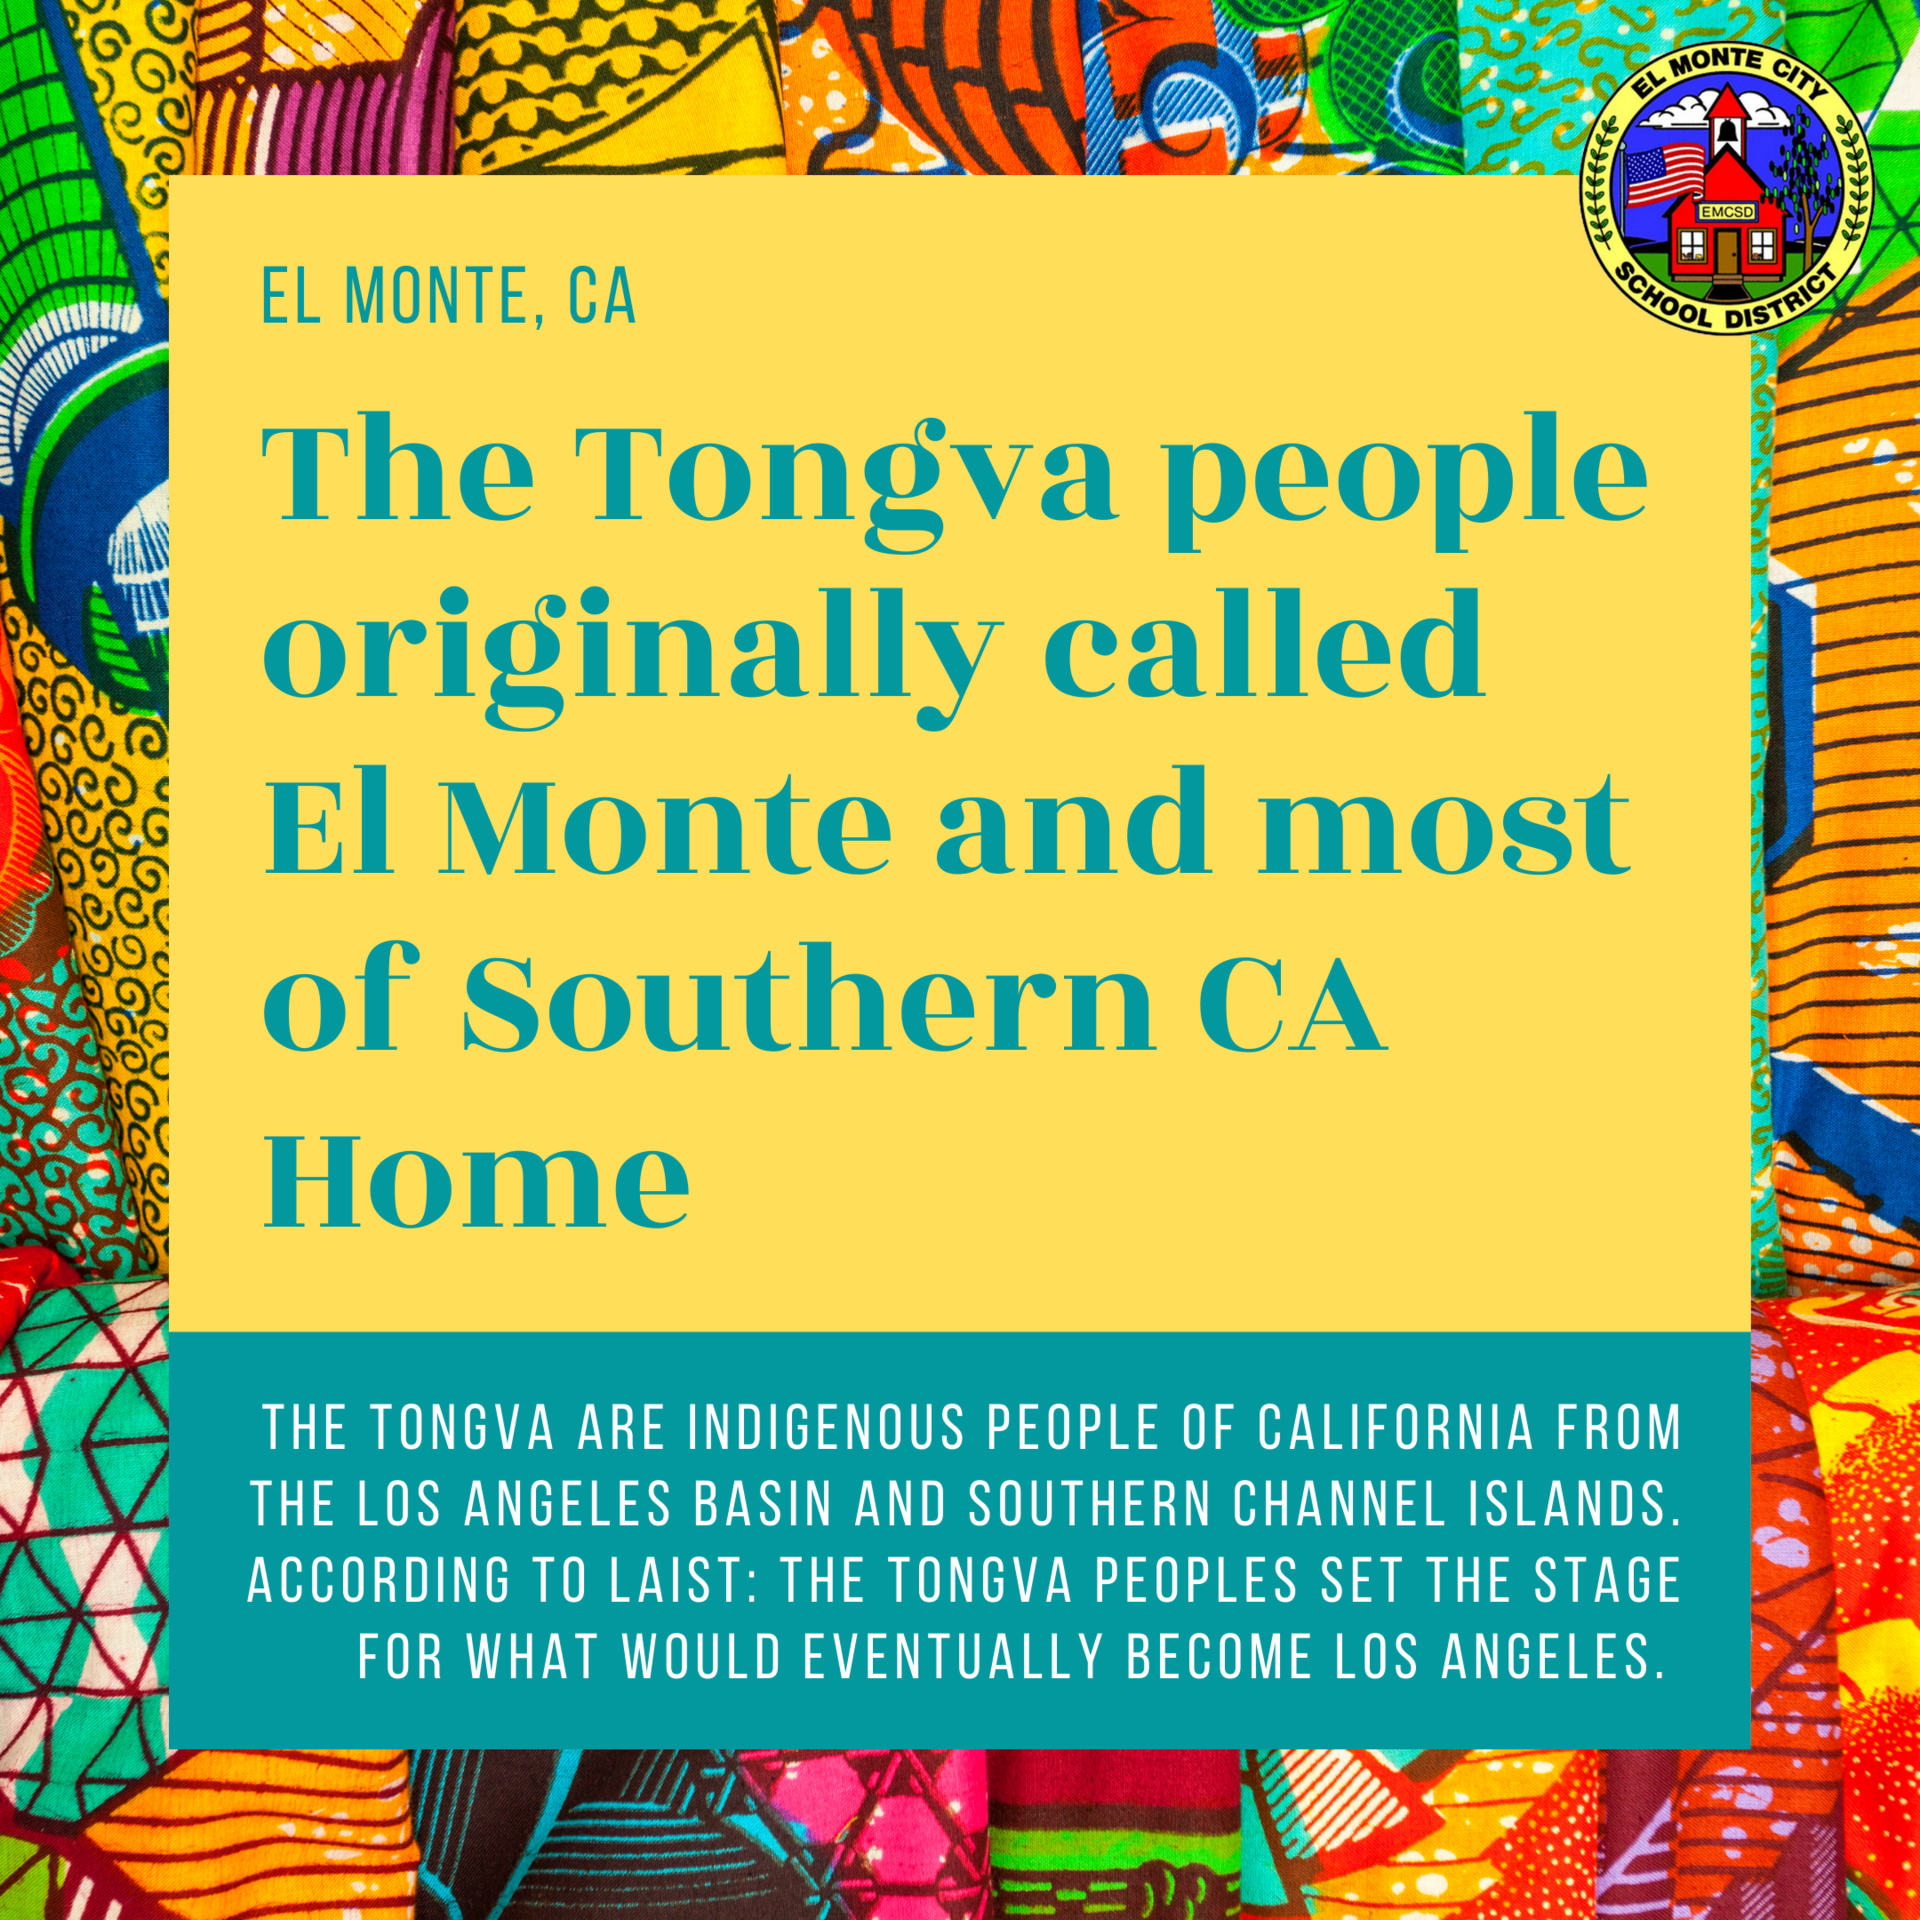 Graphic that reads: The Tongva people originally called El Monte and most of Southern CA Home. The Tongva are indigenous people of california from the los angeles basin and southern channel islands. According to LAist: the Tongva peoples set the stage for what would eventually become Los Angeles.